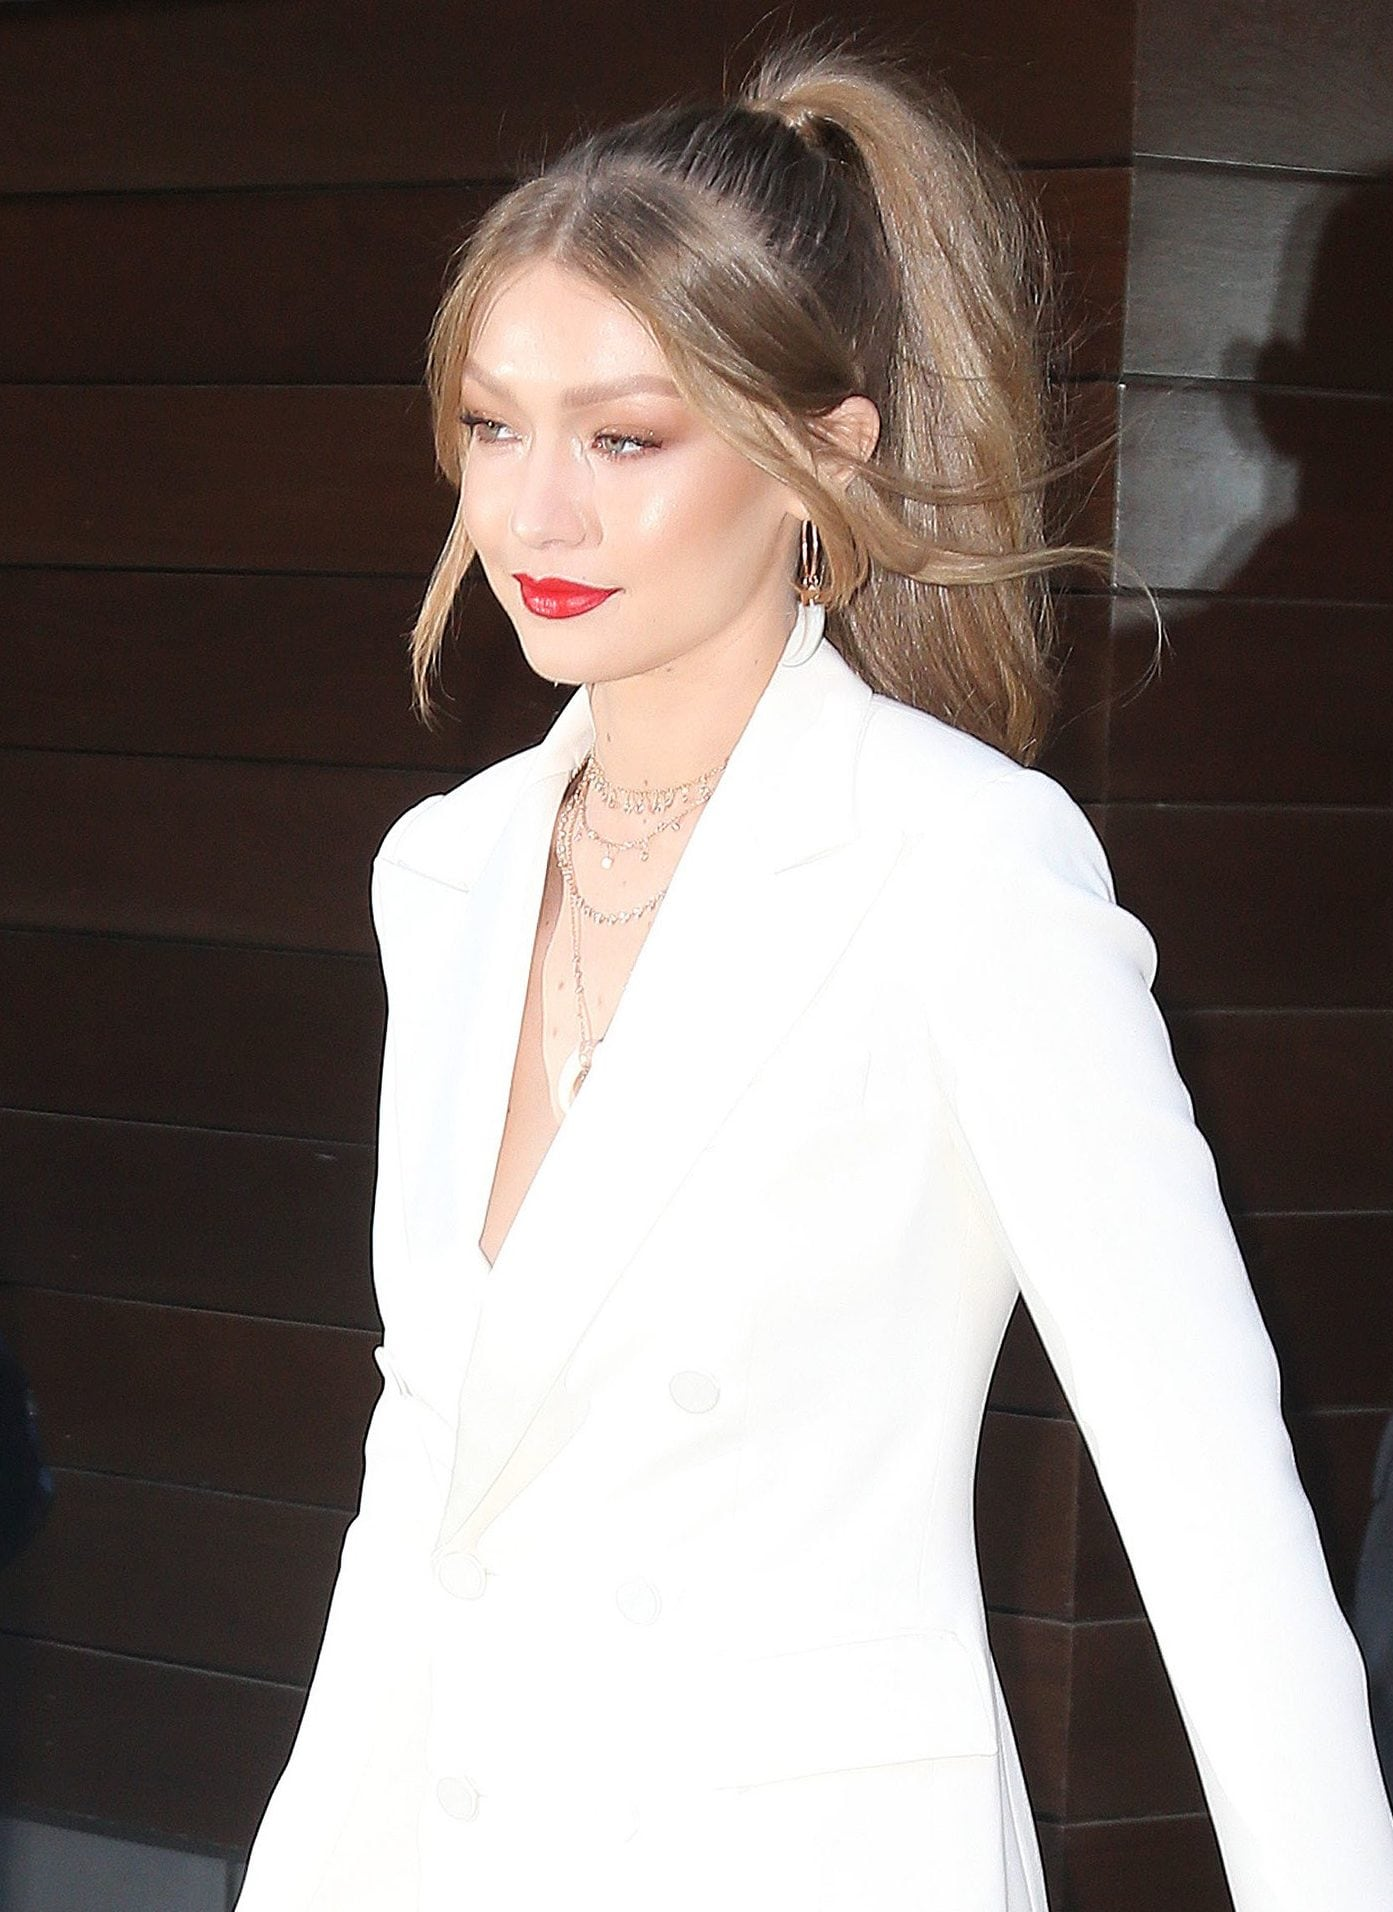 Winter hairstyles 2018: Out and about shot of Gigi Hadid with her dirty blonde hair in a ponytail with Bardot style wispy fringe, wearing a white two-piece suit